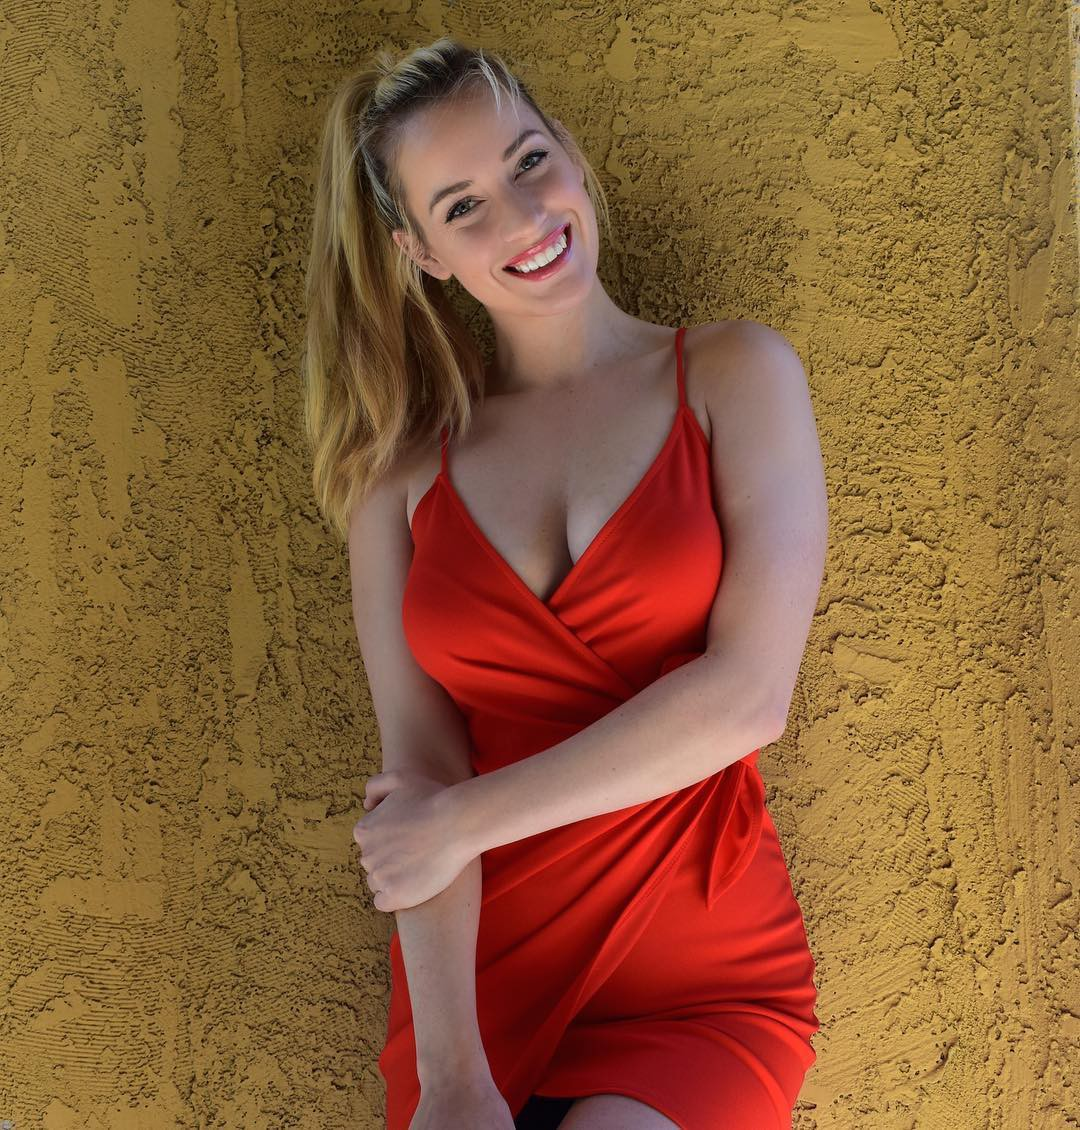 Oh! Wow paige spiranac sexy, Hole in one